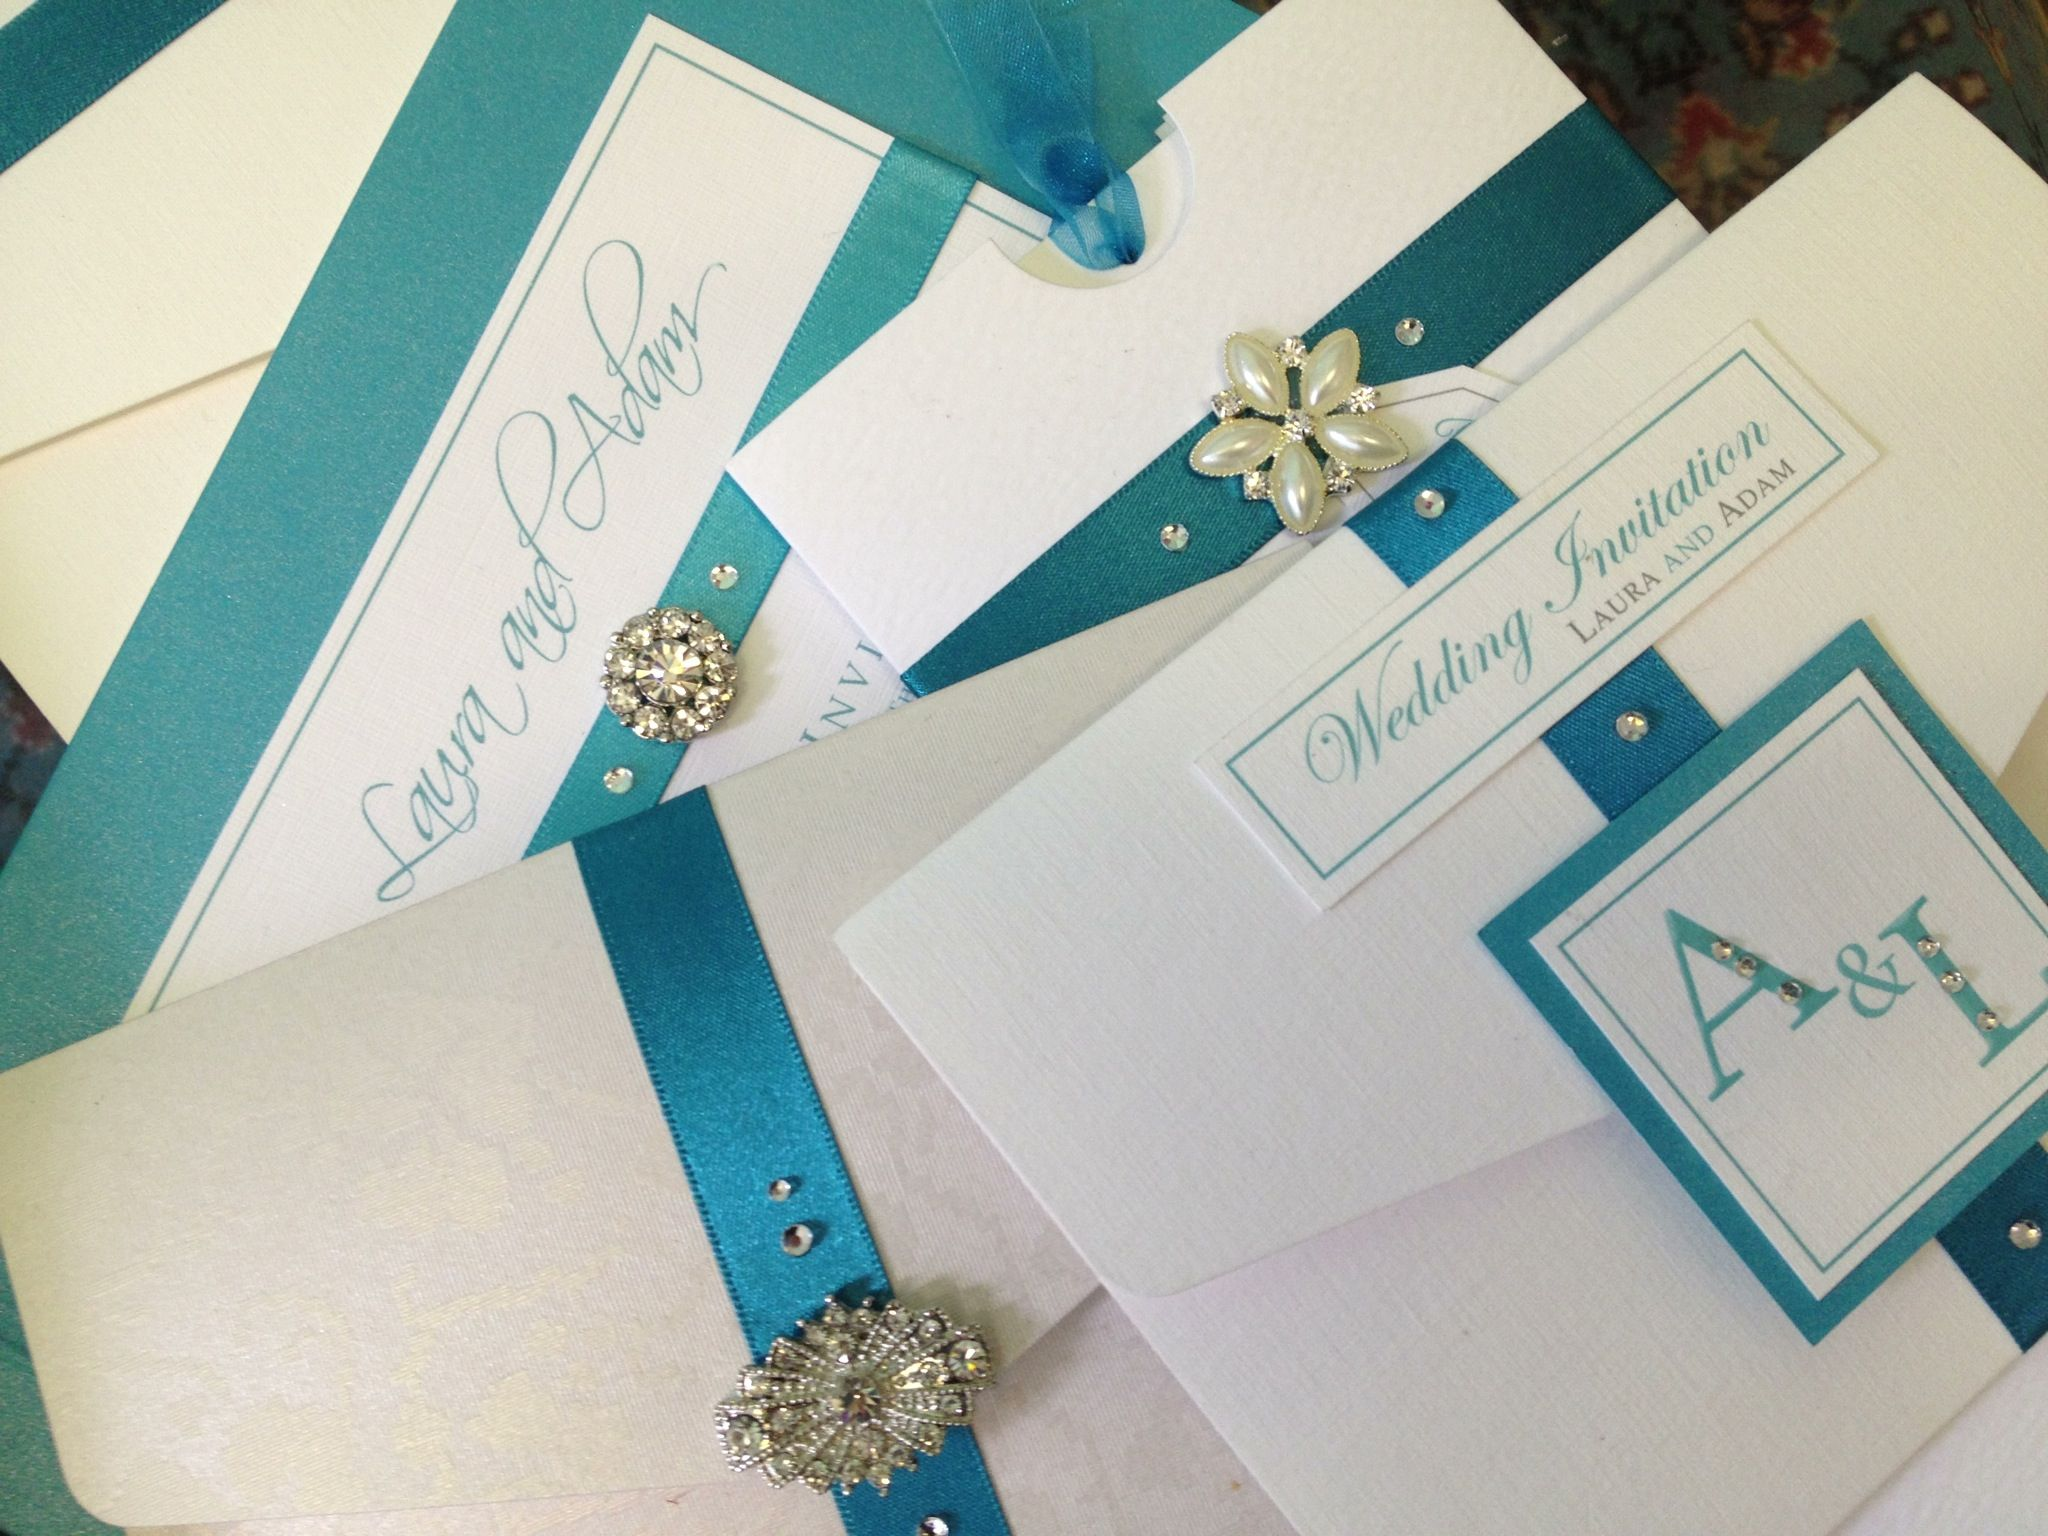 Teal triumph: luxury wedding invitations handmade and bespoke in all ...